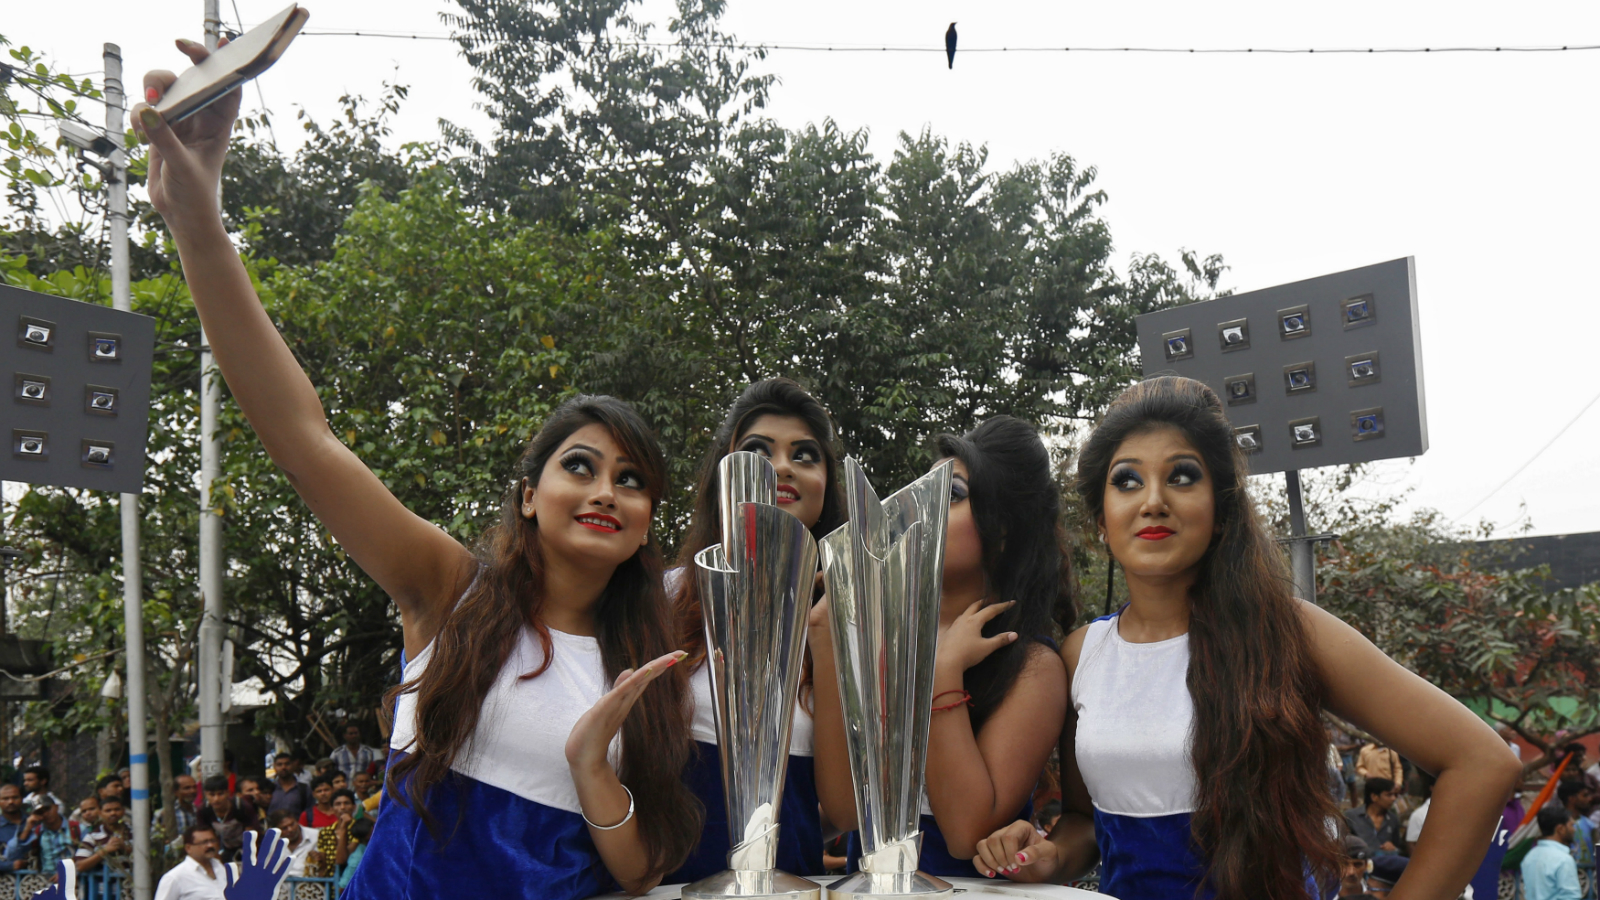 Models take a selfie next to the World Twenty20 trophies after they arrived in Kolkata, India, February 24, 2016. The two tournaments, Men's World Twenty20 and Women's World Twenty20 are scheduled to start on March 8 and March 15 respectively.